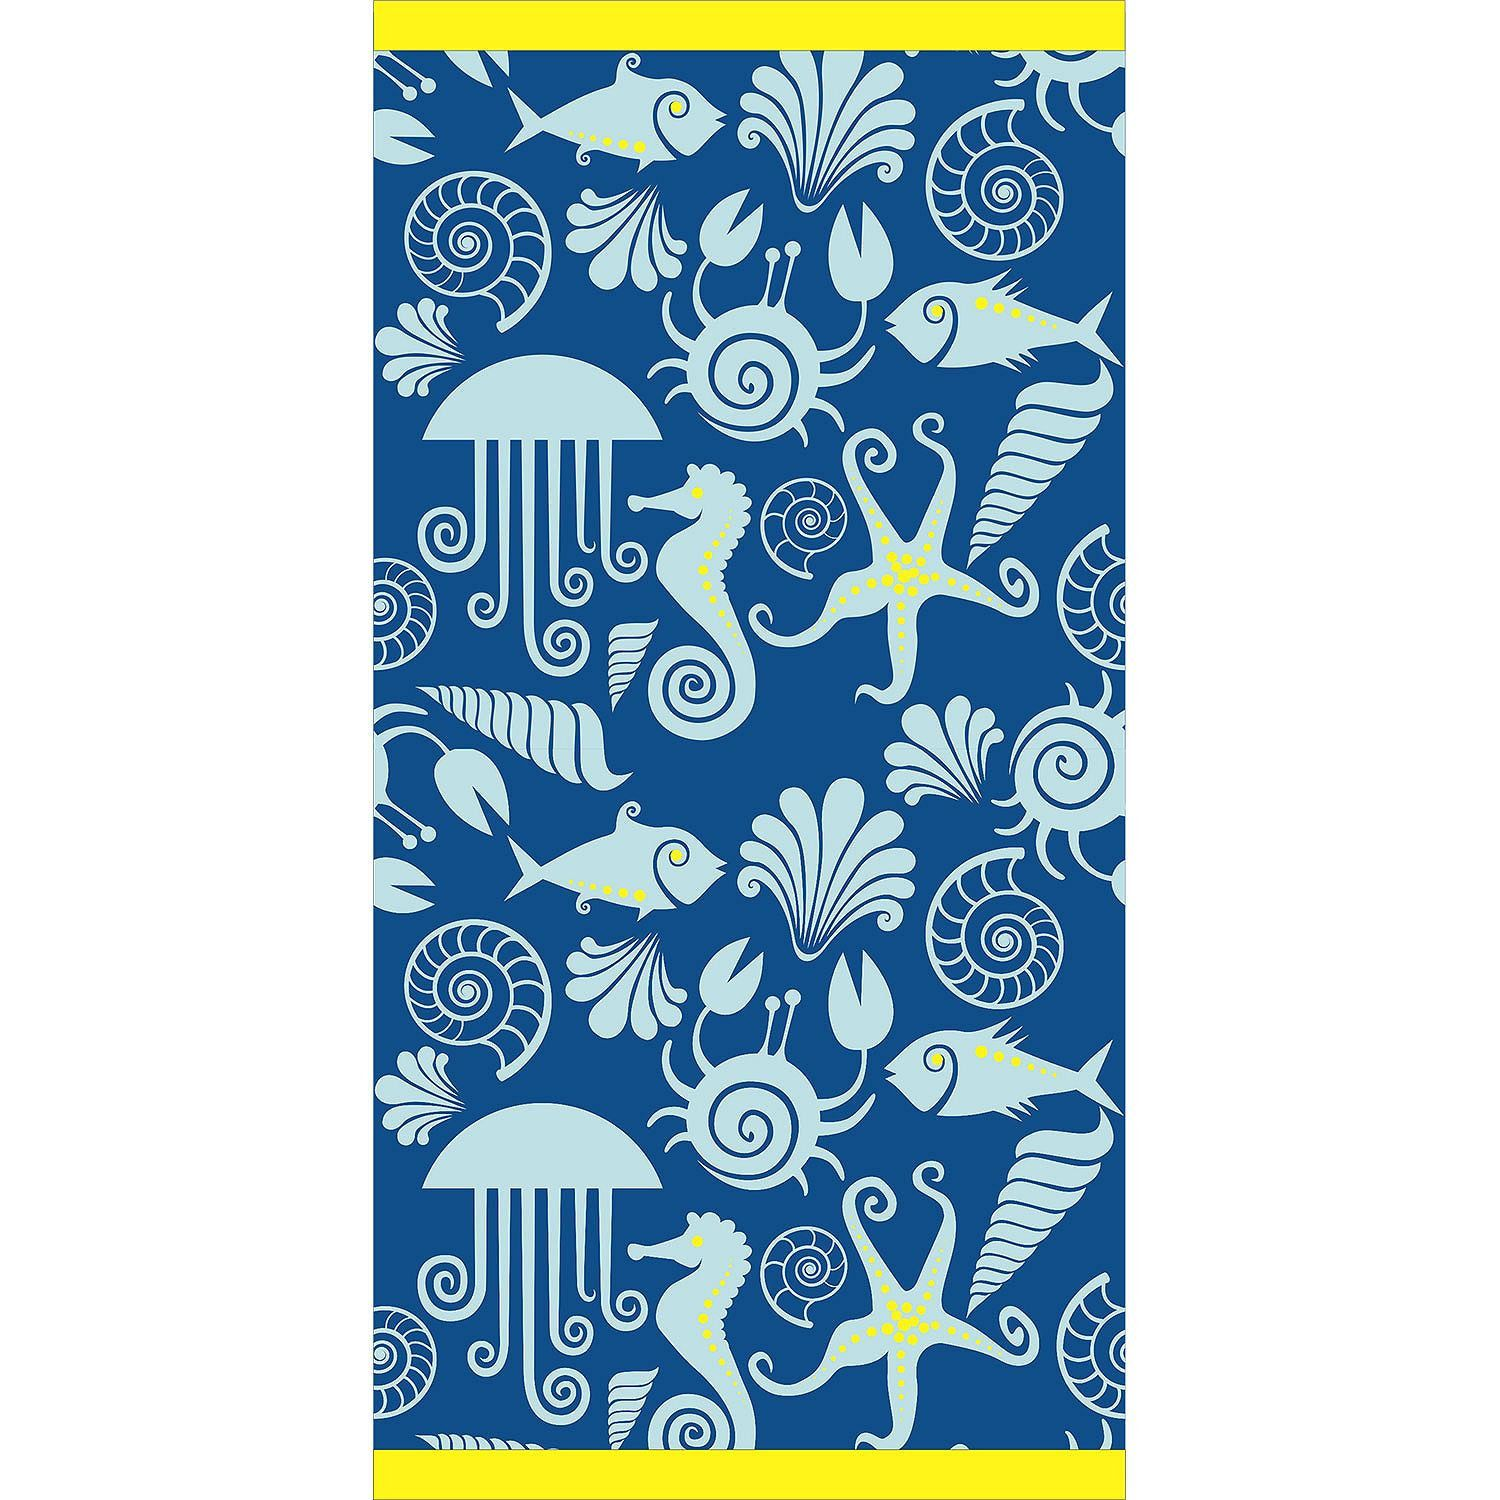 Youth Beach Towel Personalized Pool Towel Gift For Boys Boy